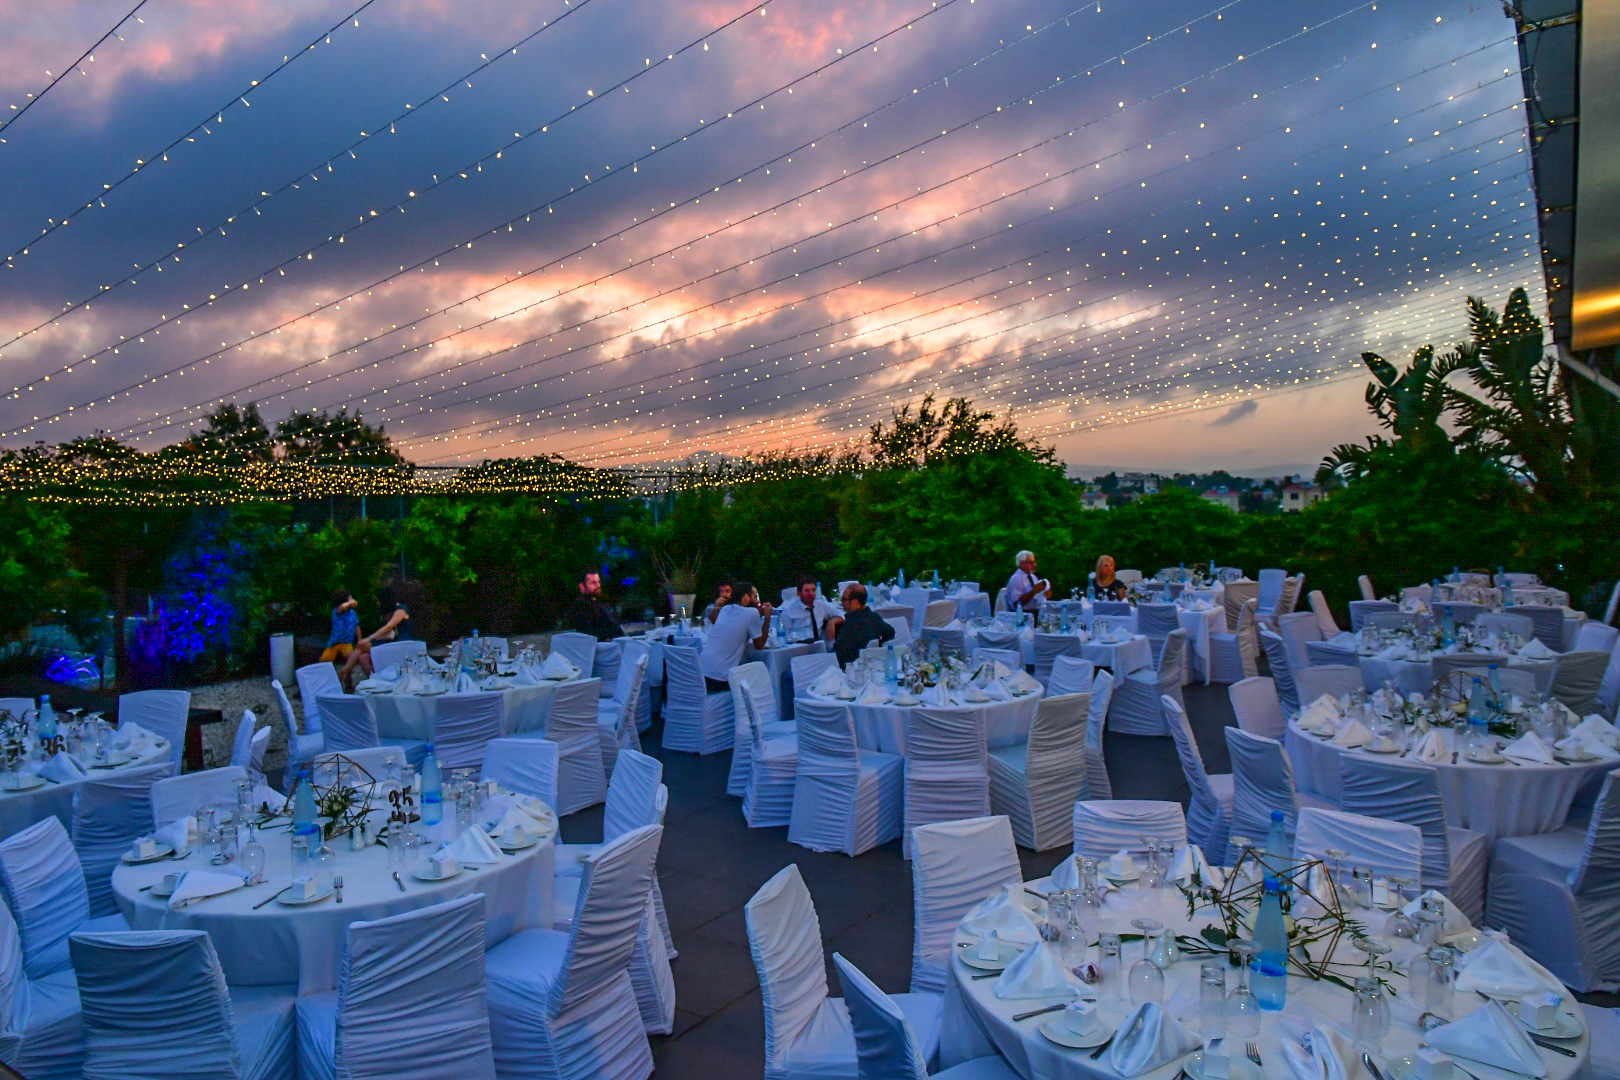 EVENT CENTRE VERANDA _ WEDDING DINNER SET UP.jpg